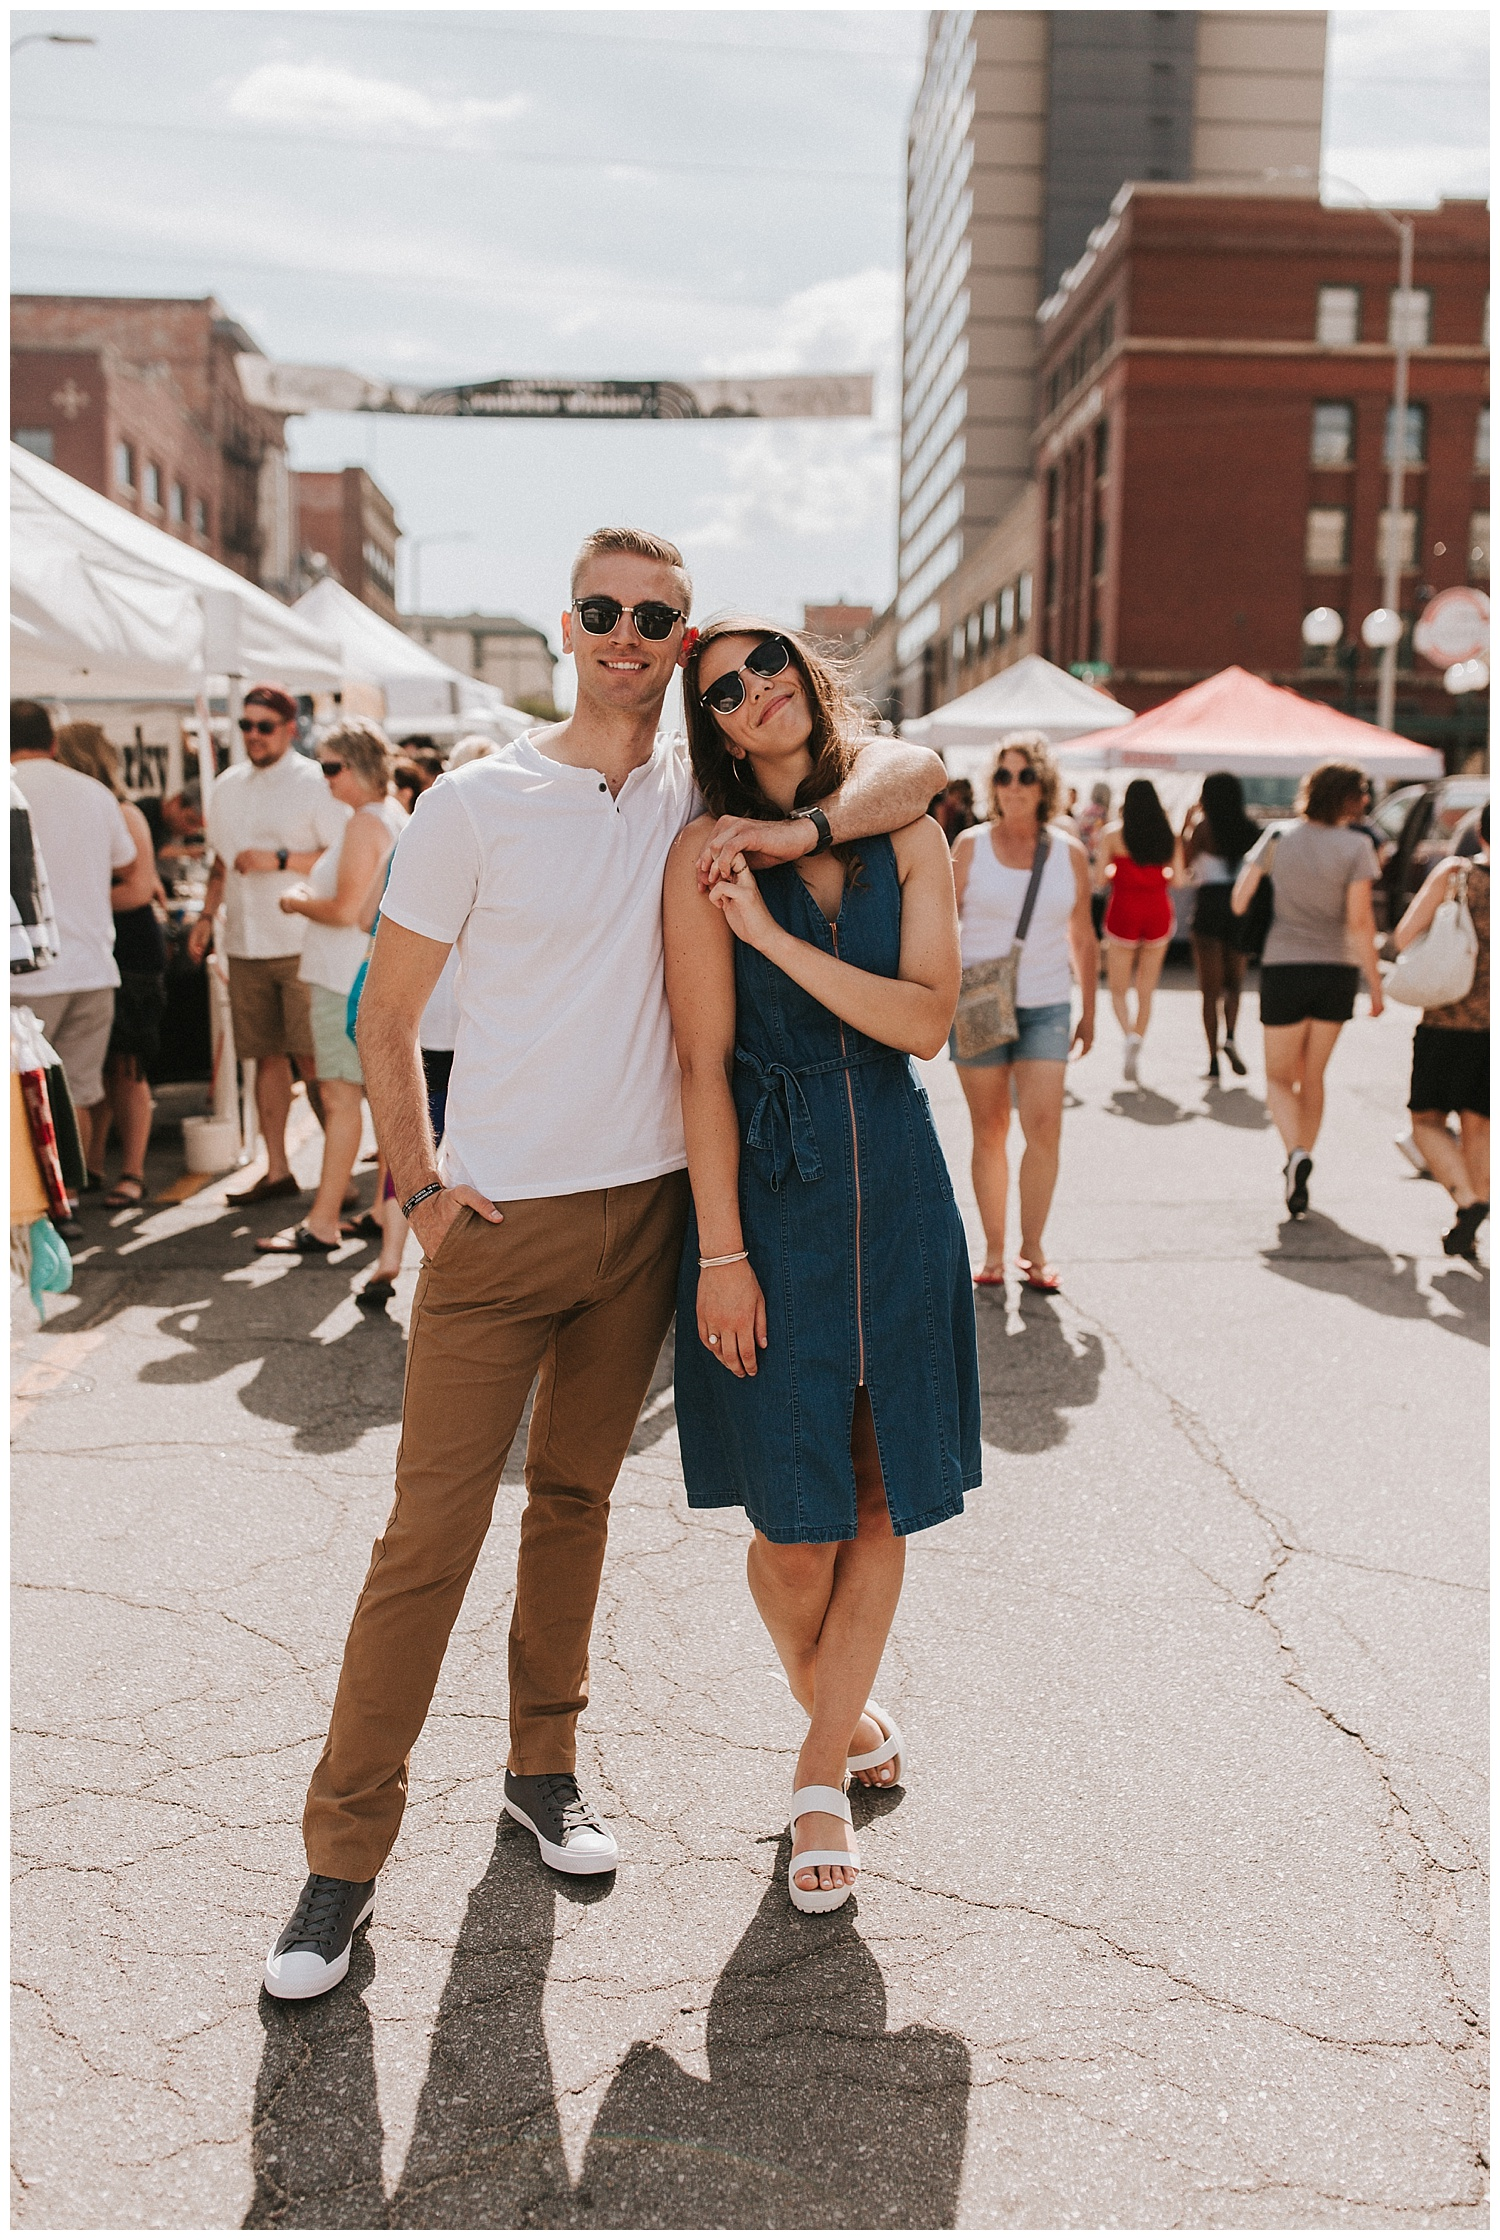 adventurous_photographer_farmers_market_engagement_session_love_midwest_travel_destination_photographer_haley_chicoine_0012.jpg